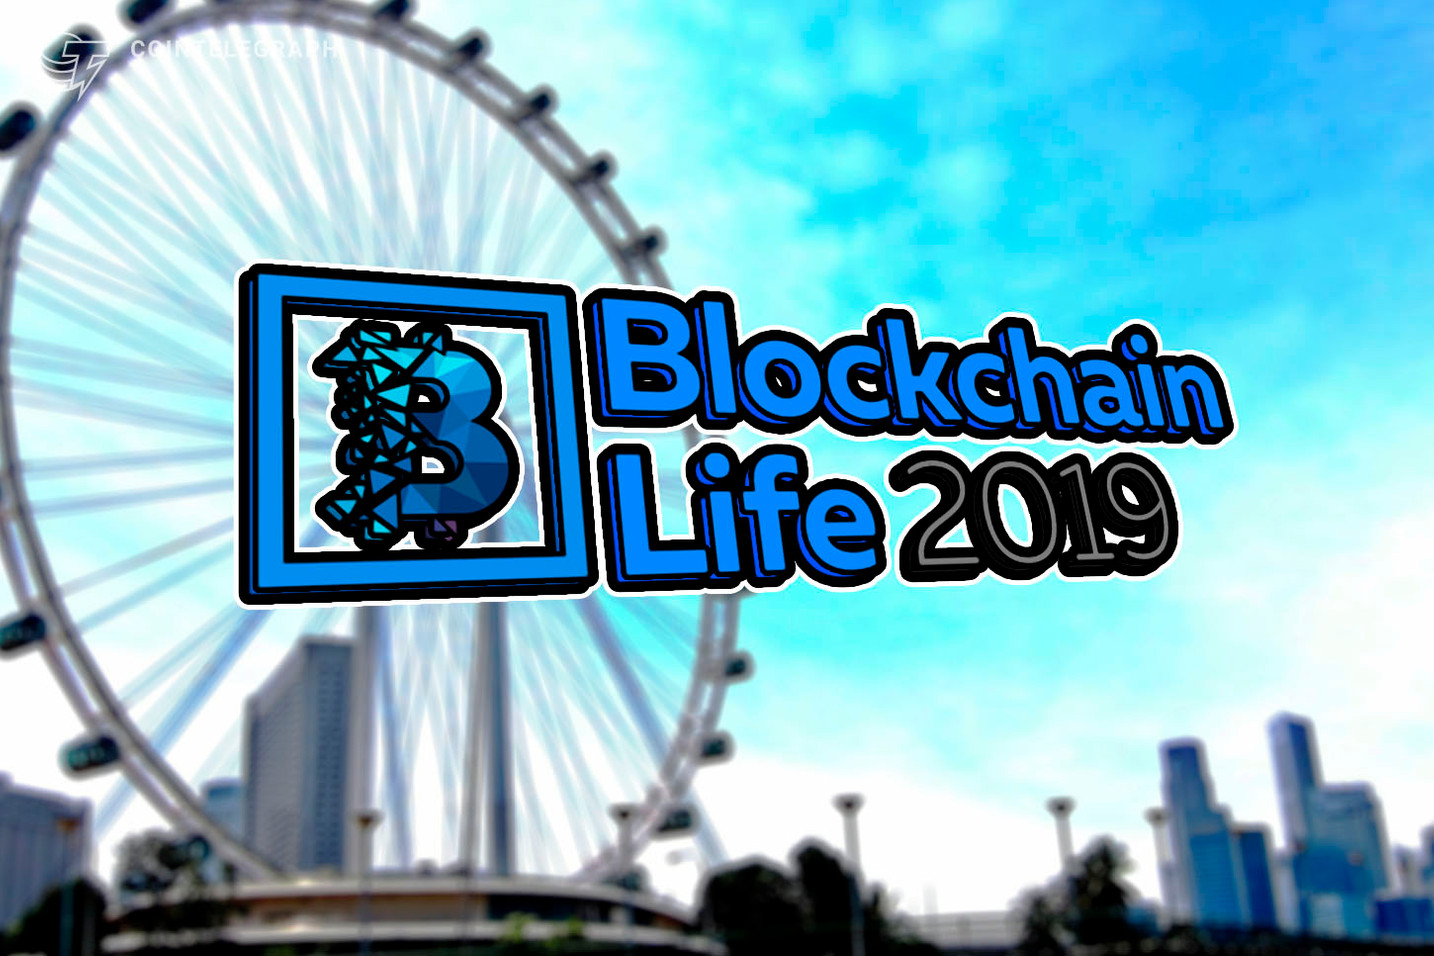 Singapore Hosts the Worldwide Crypto Forum - Blockchain Life 2019